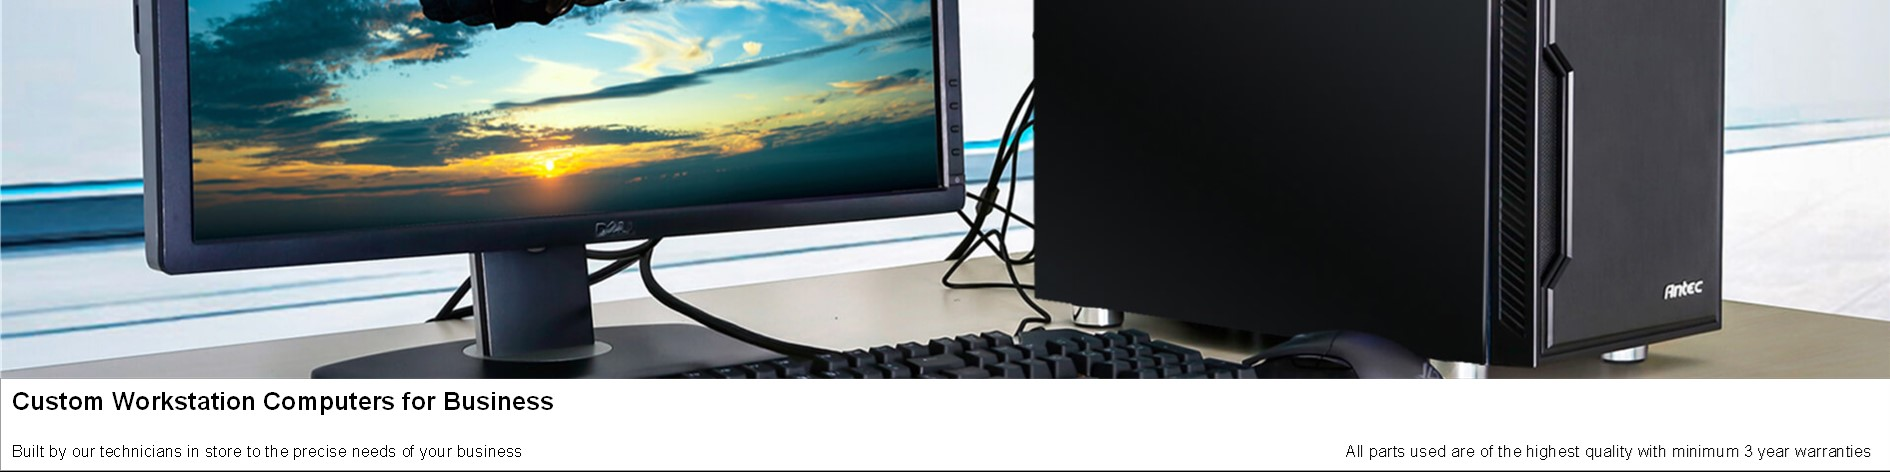 Custom Workstation Computers for Business